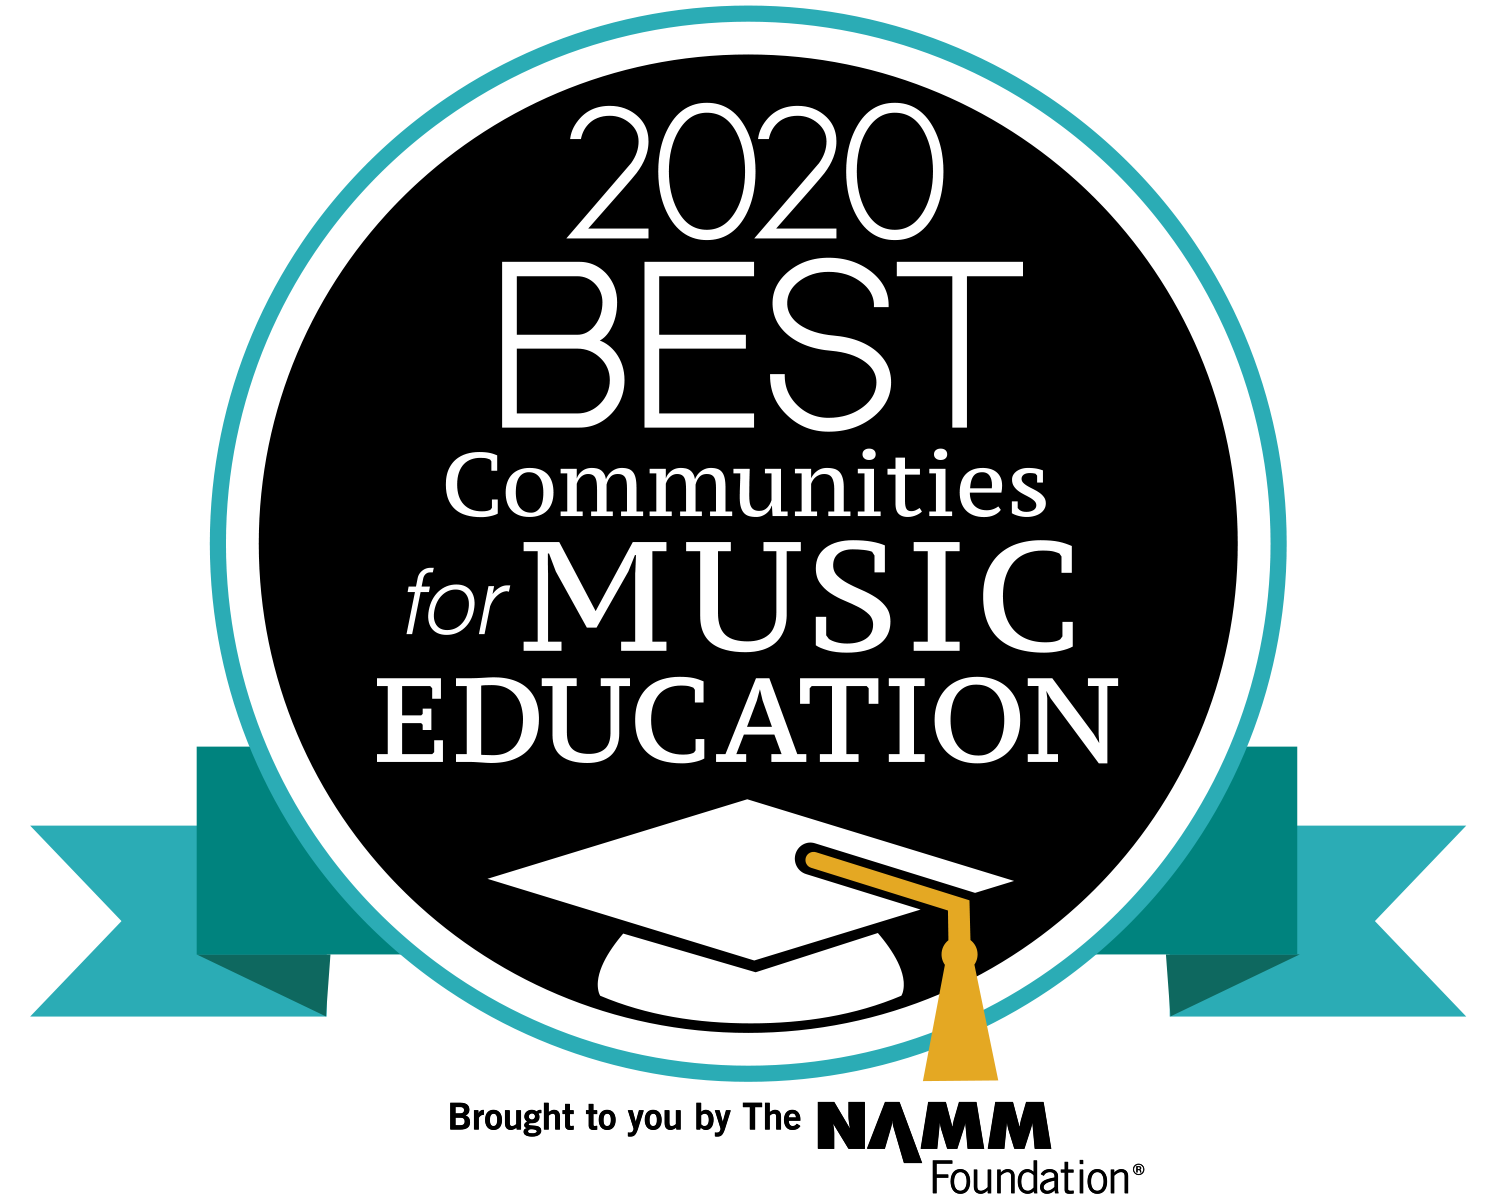 2020 best communities for music educatio by namm foundation